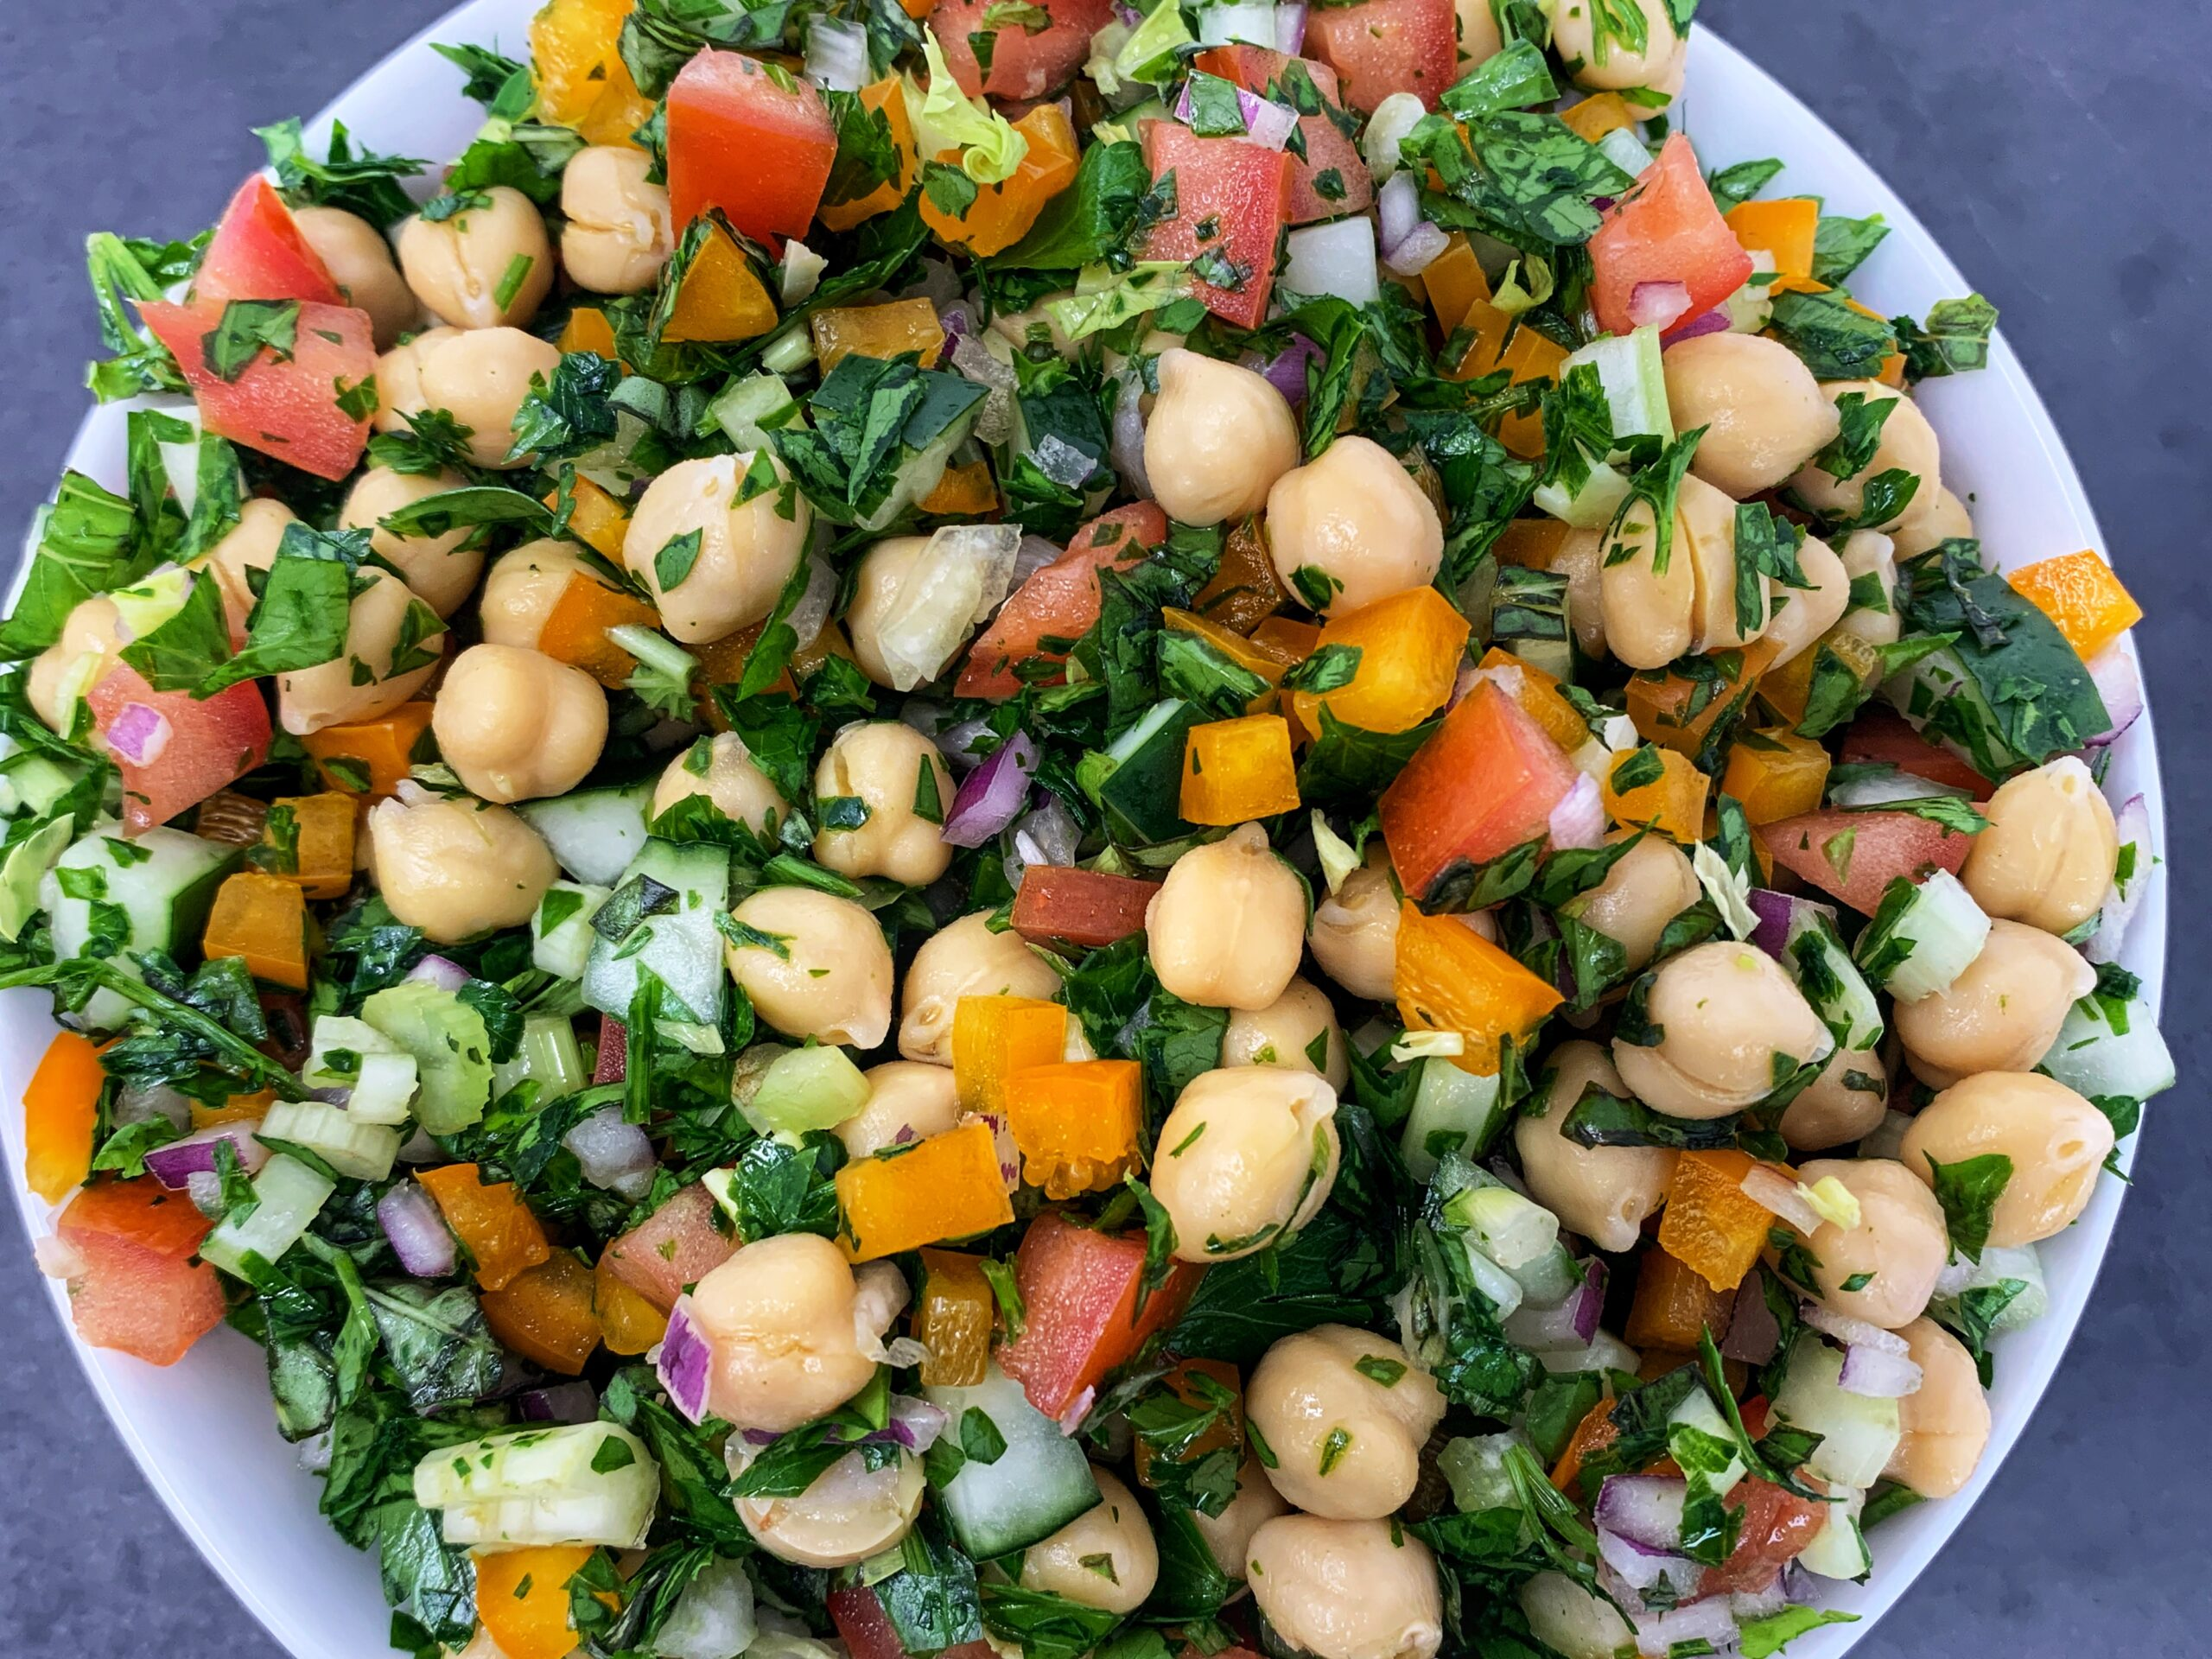 Prepared Herby chickpea salad